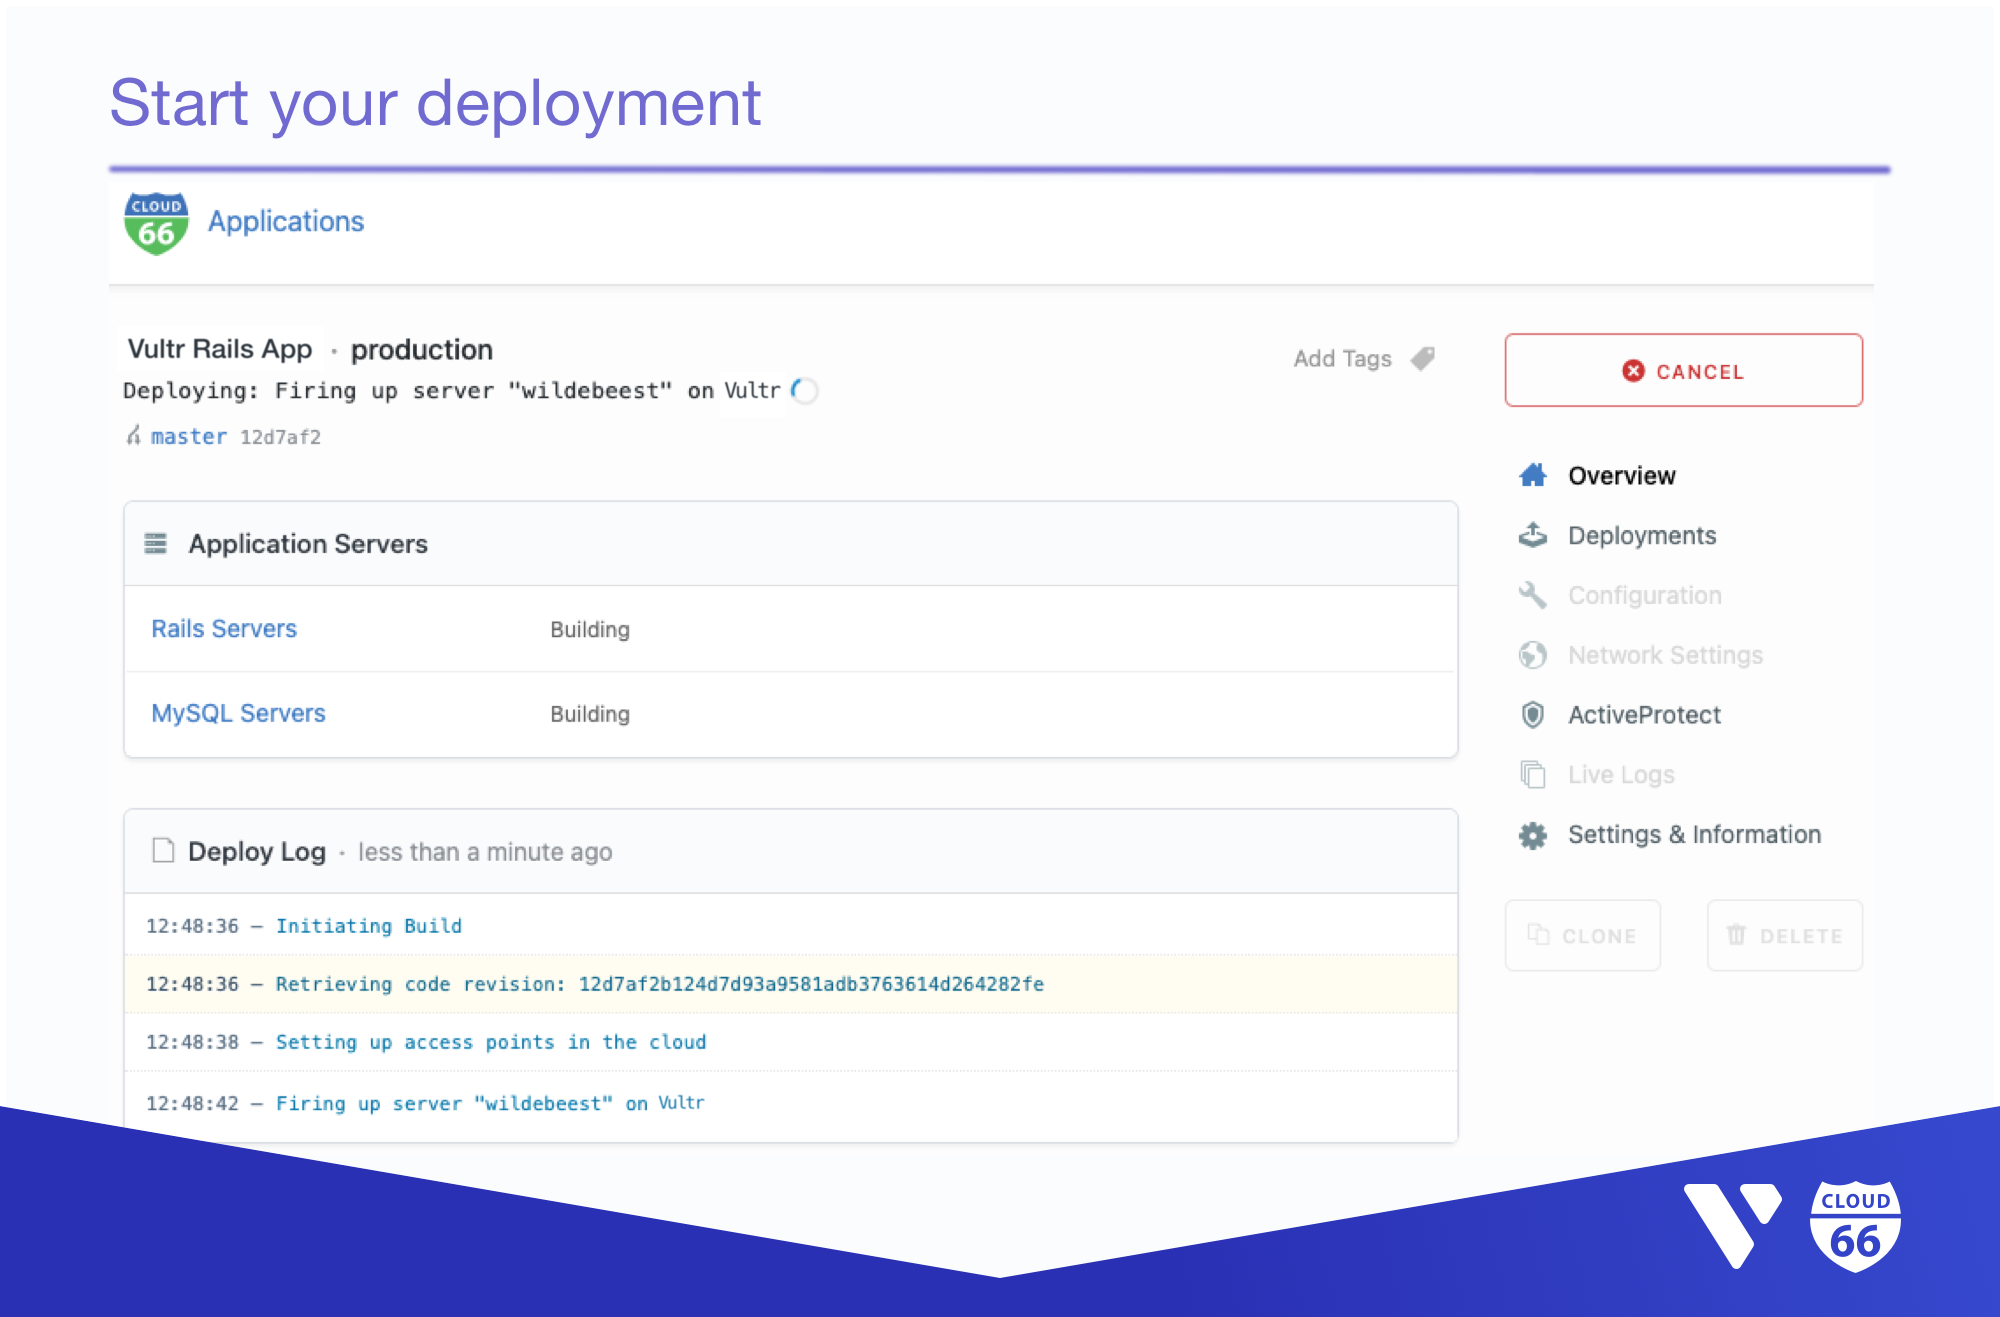 Cloud 66 Dashboard: Click on 'Deploy Application' button to start your deployment.